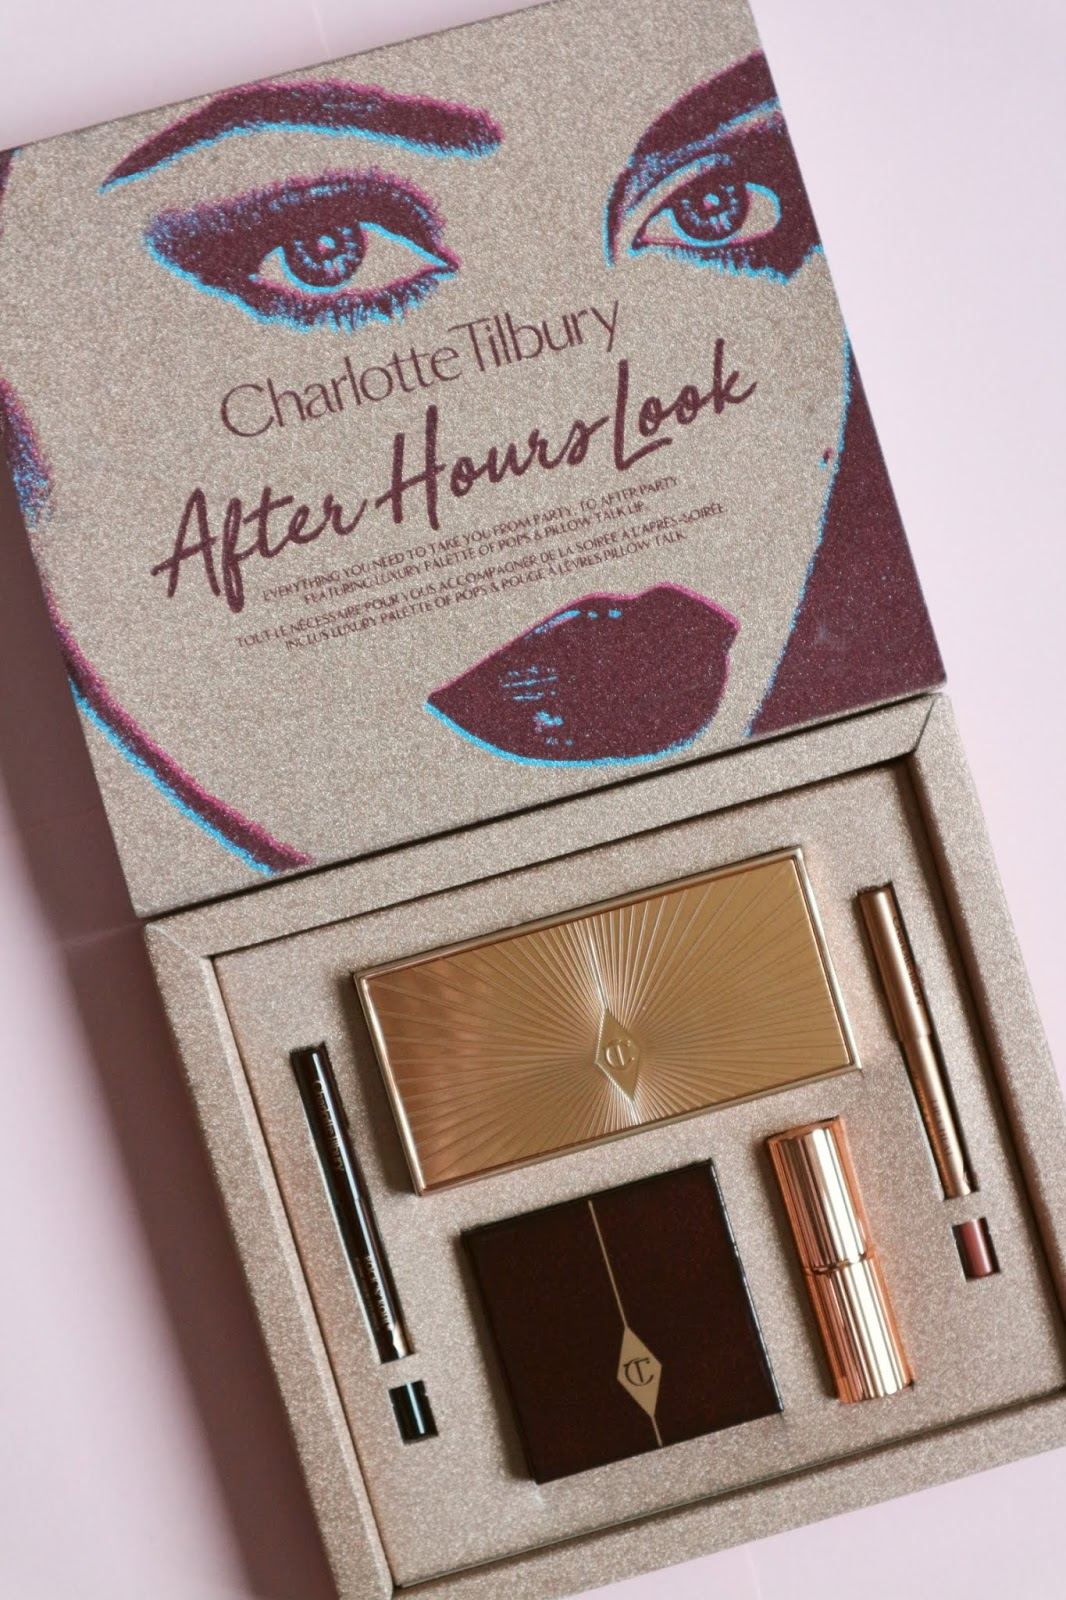 charlotte tilbury after hours look gift box